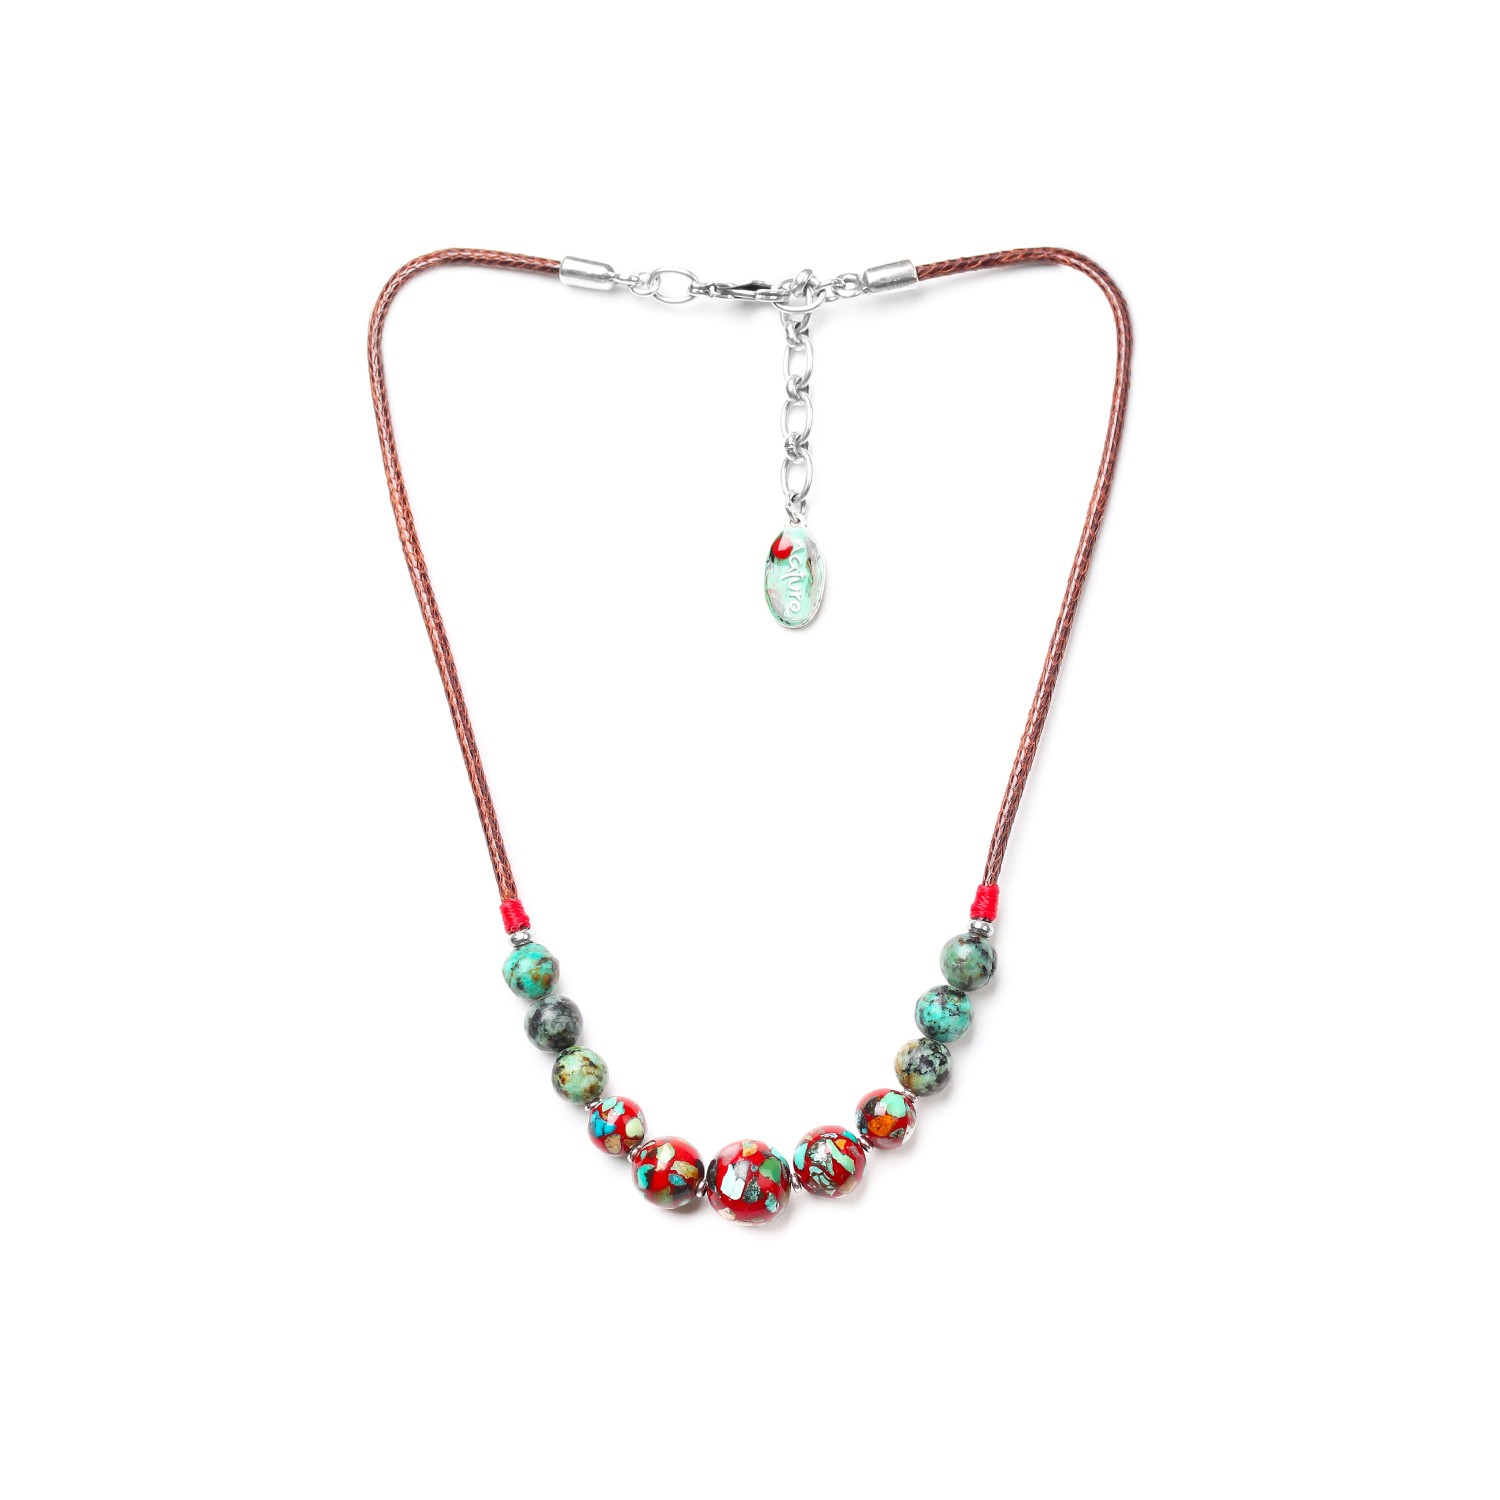 KATMANDOU collier 5 perles rouges